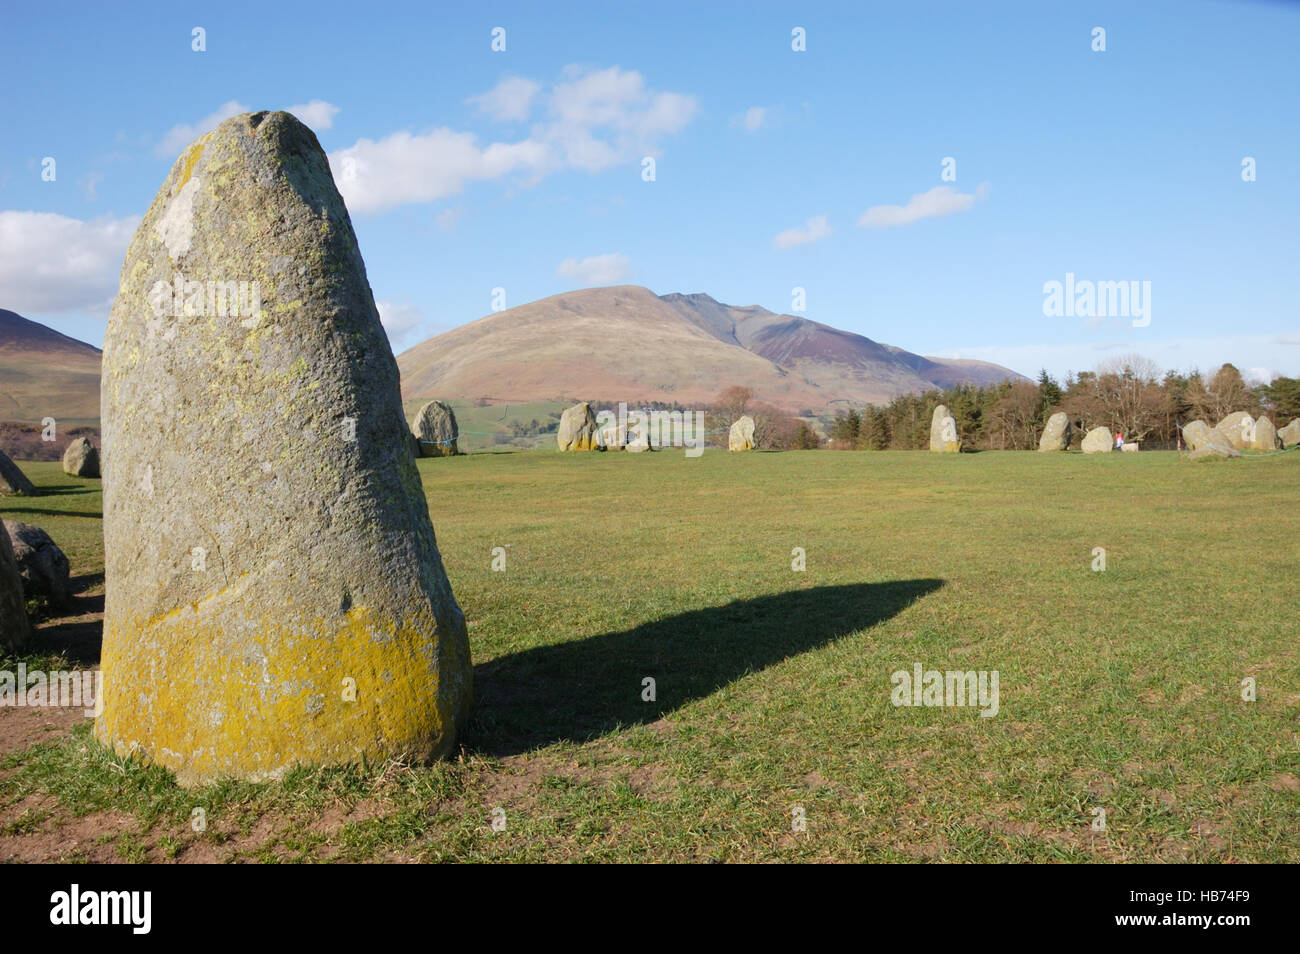 Looking towards Blencathra from Castlerigg Stone Circle in the English Lake District, Cumbria. Stock Photo